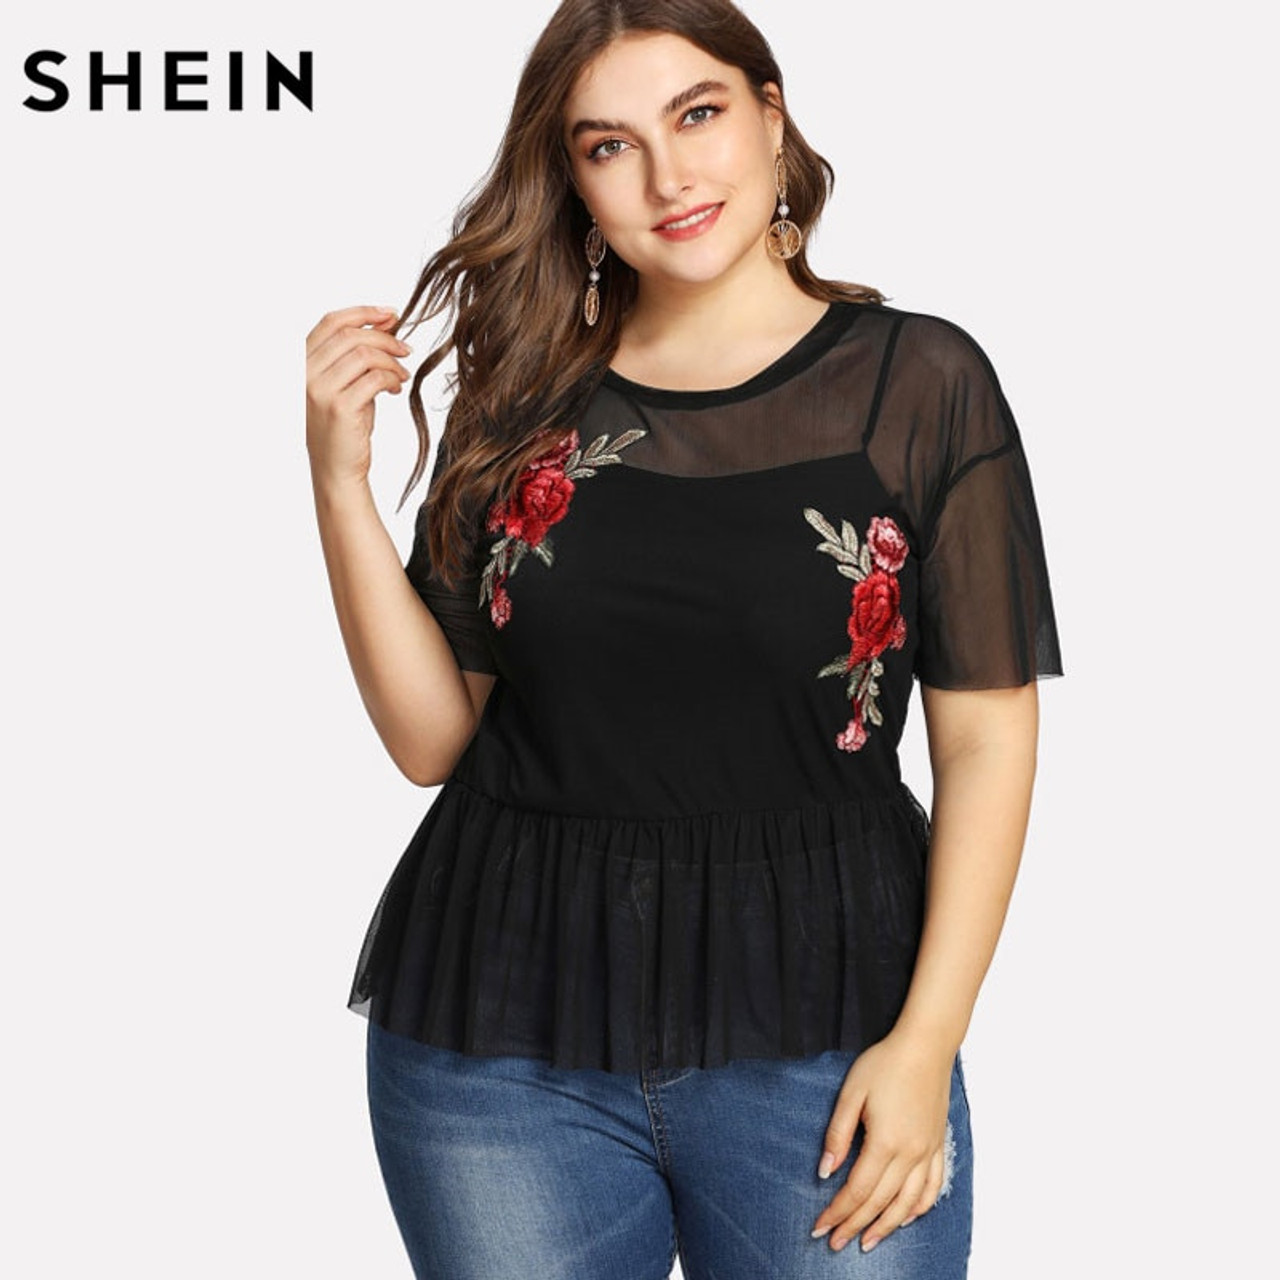 8aff41b4b SHEIN Plus Size Summer Black Blouse Women Sexy Floral Round Neck Short  Sleeve Embroidered Rose Applique ...